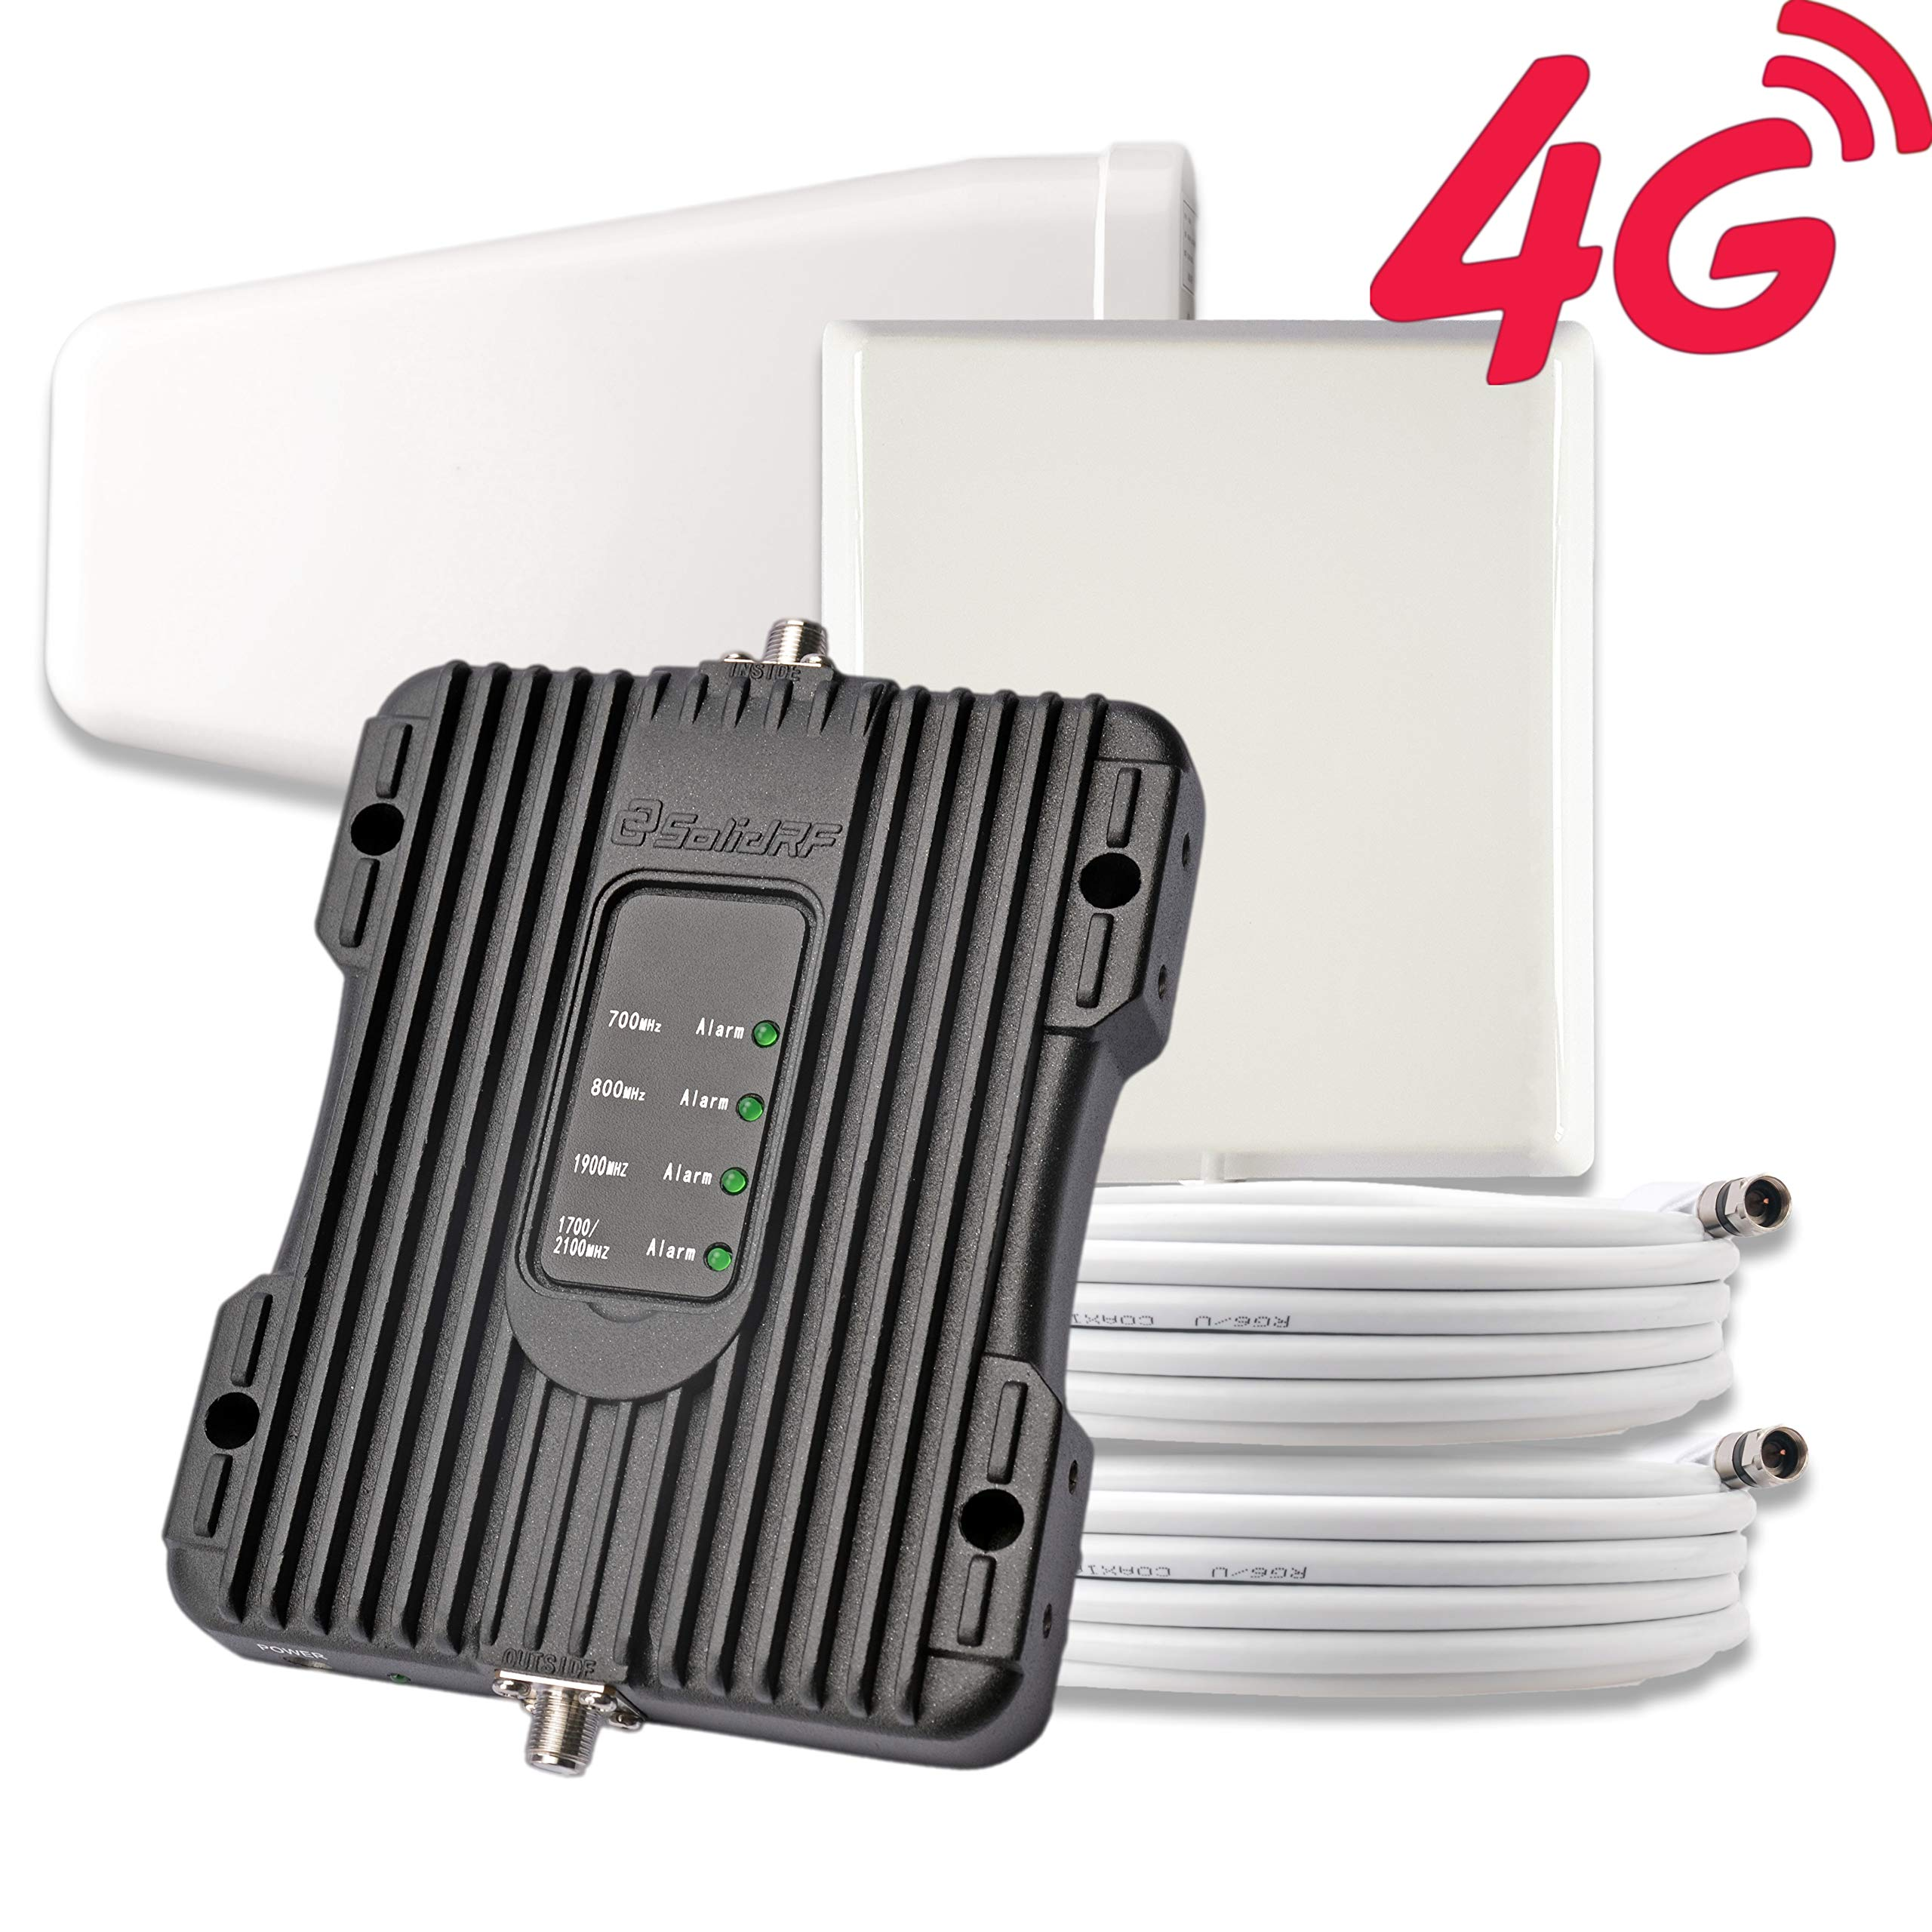 SolidRF Cell Phone Booster 4G Kit Cell Phone Signal-Booster for Home Office Supports 4000 SQ Ft by SolidRF